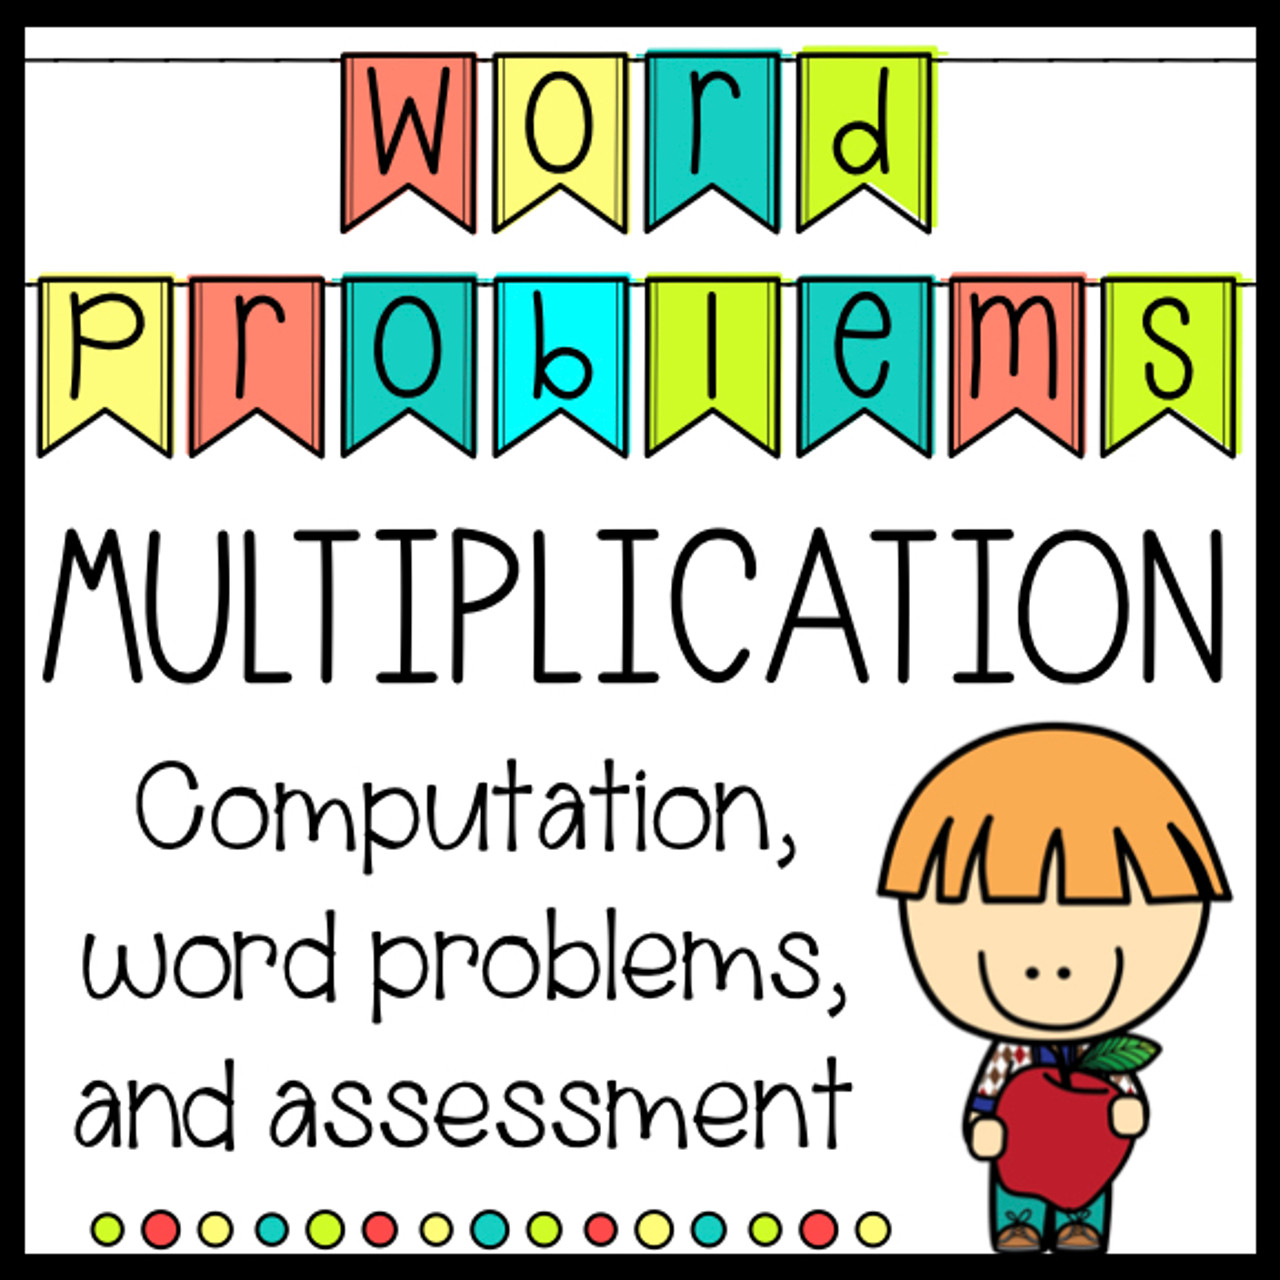 Multiplication Word Problems Computation, Word Problems, and Assessment